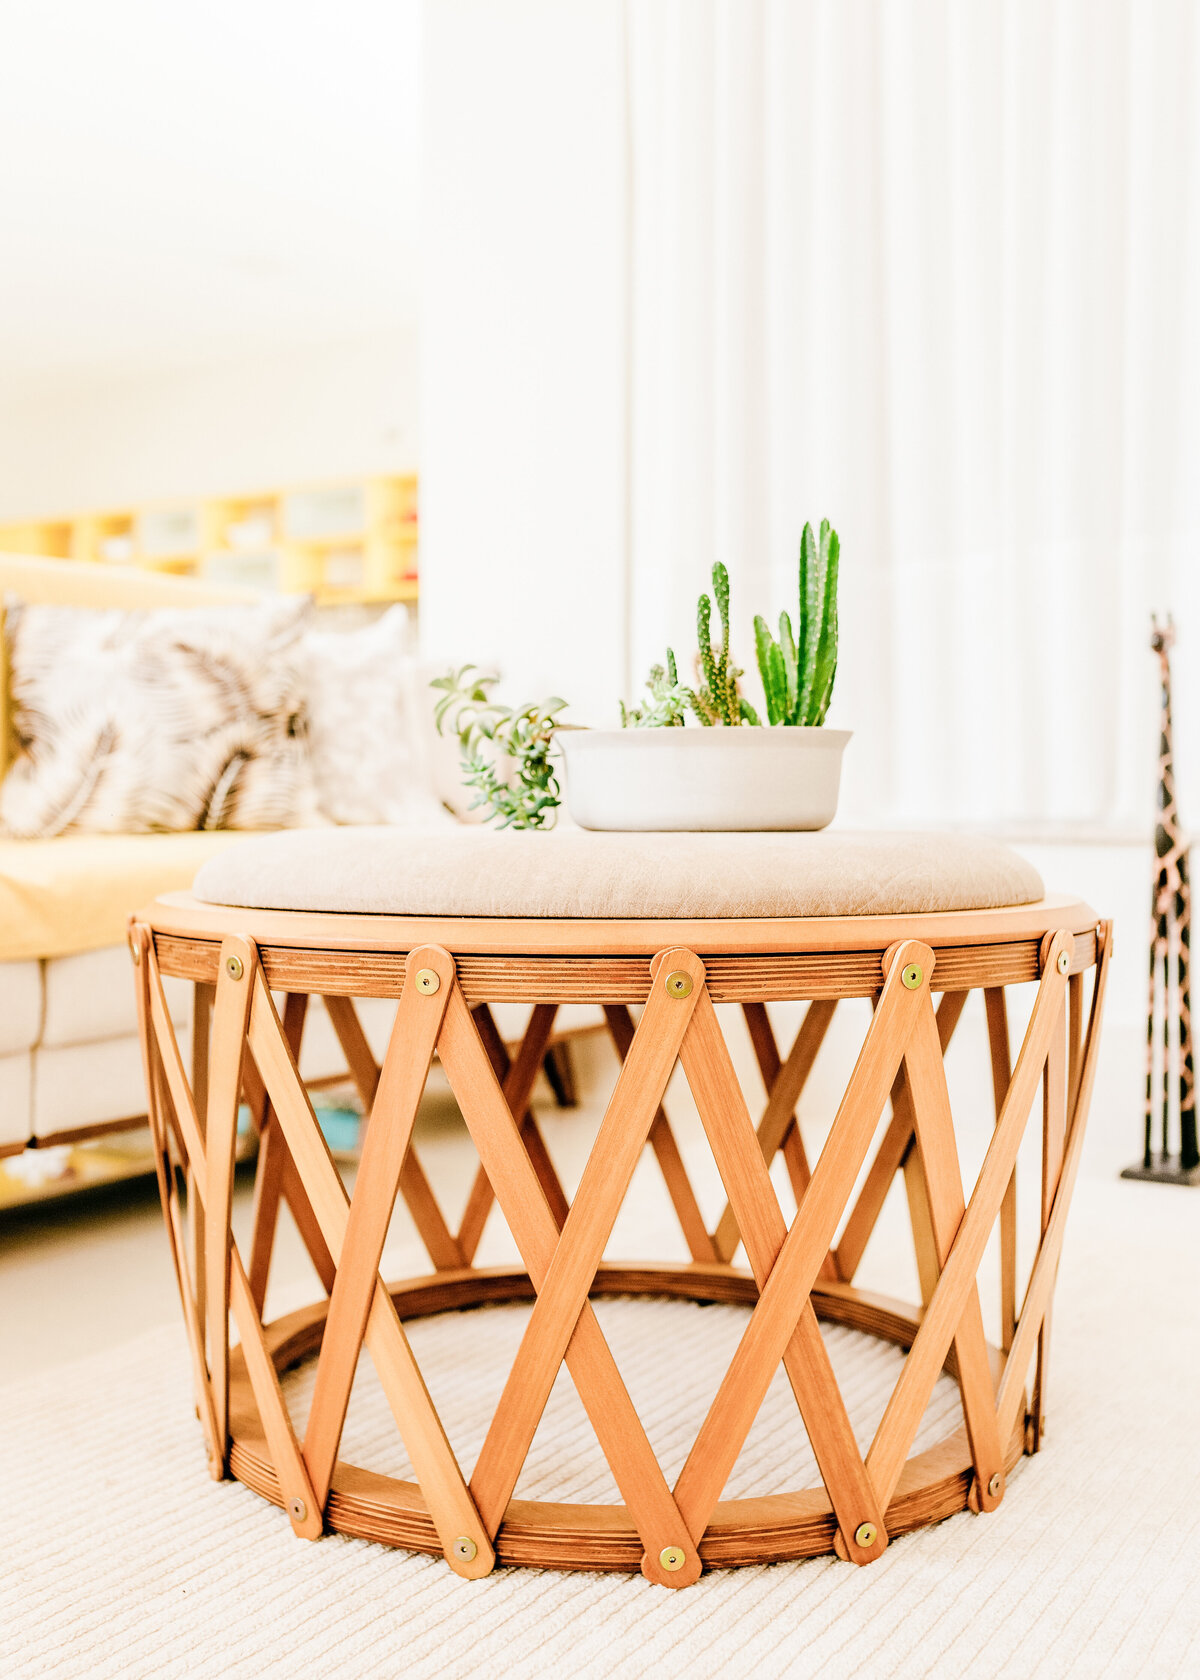 A hollow round wooden coffee table drum is on a white rug in a light lounge.